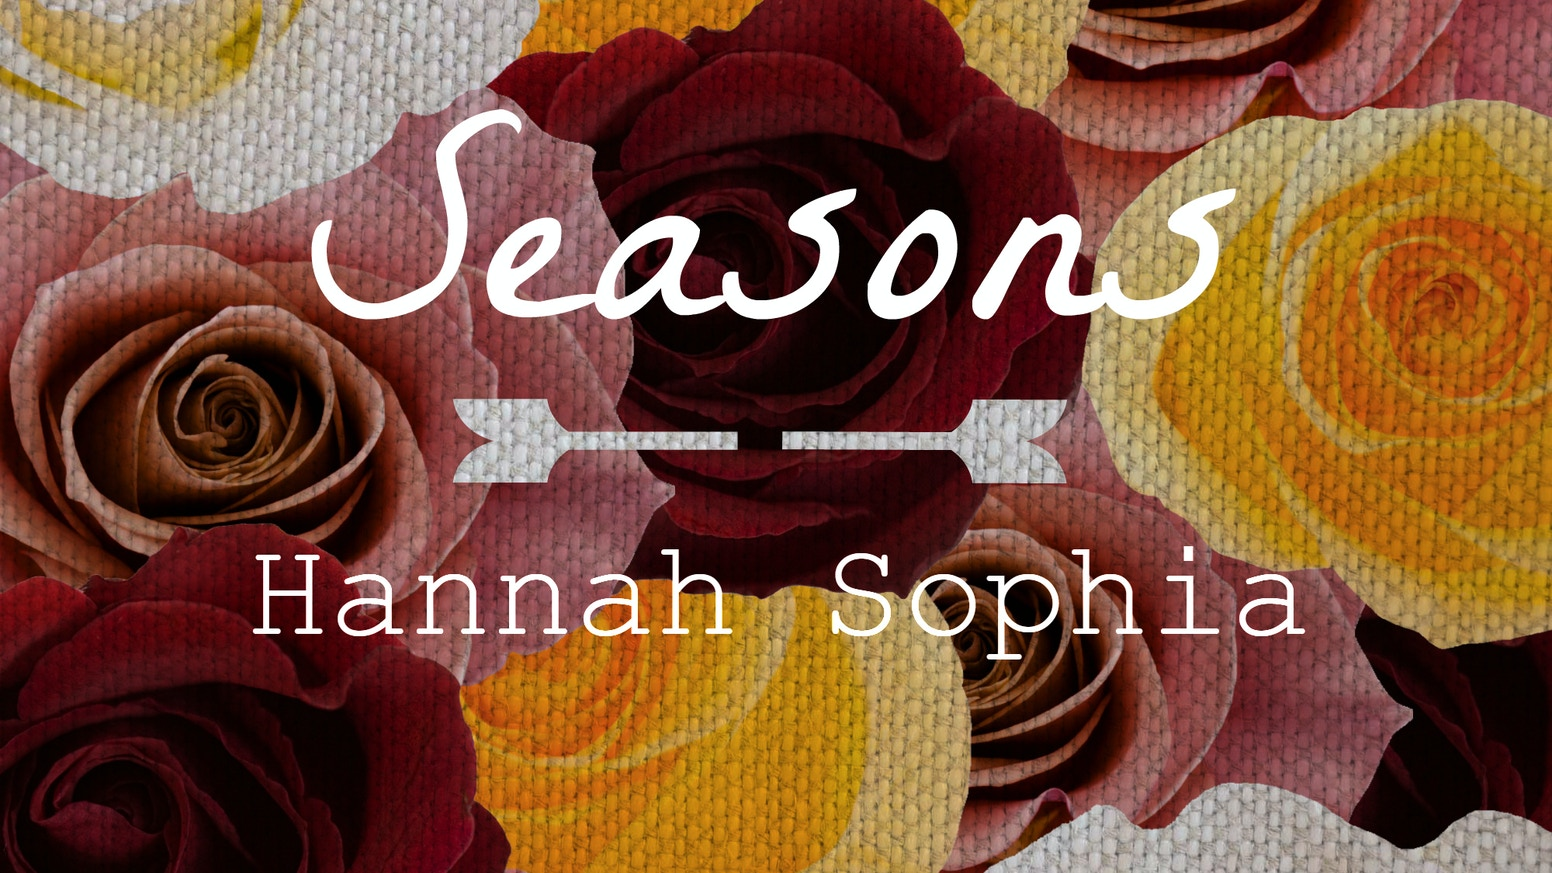 Seasons: Spring, Summer, Fall and Winter. Four EP's intertwined with art, photography, music videos and storytelling.